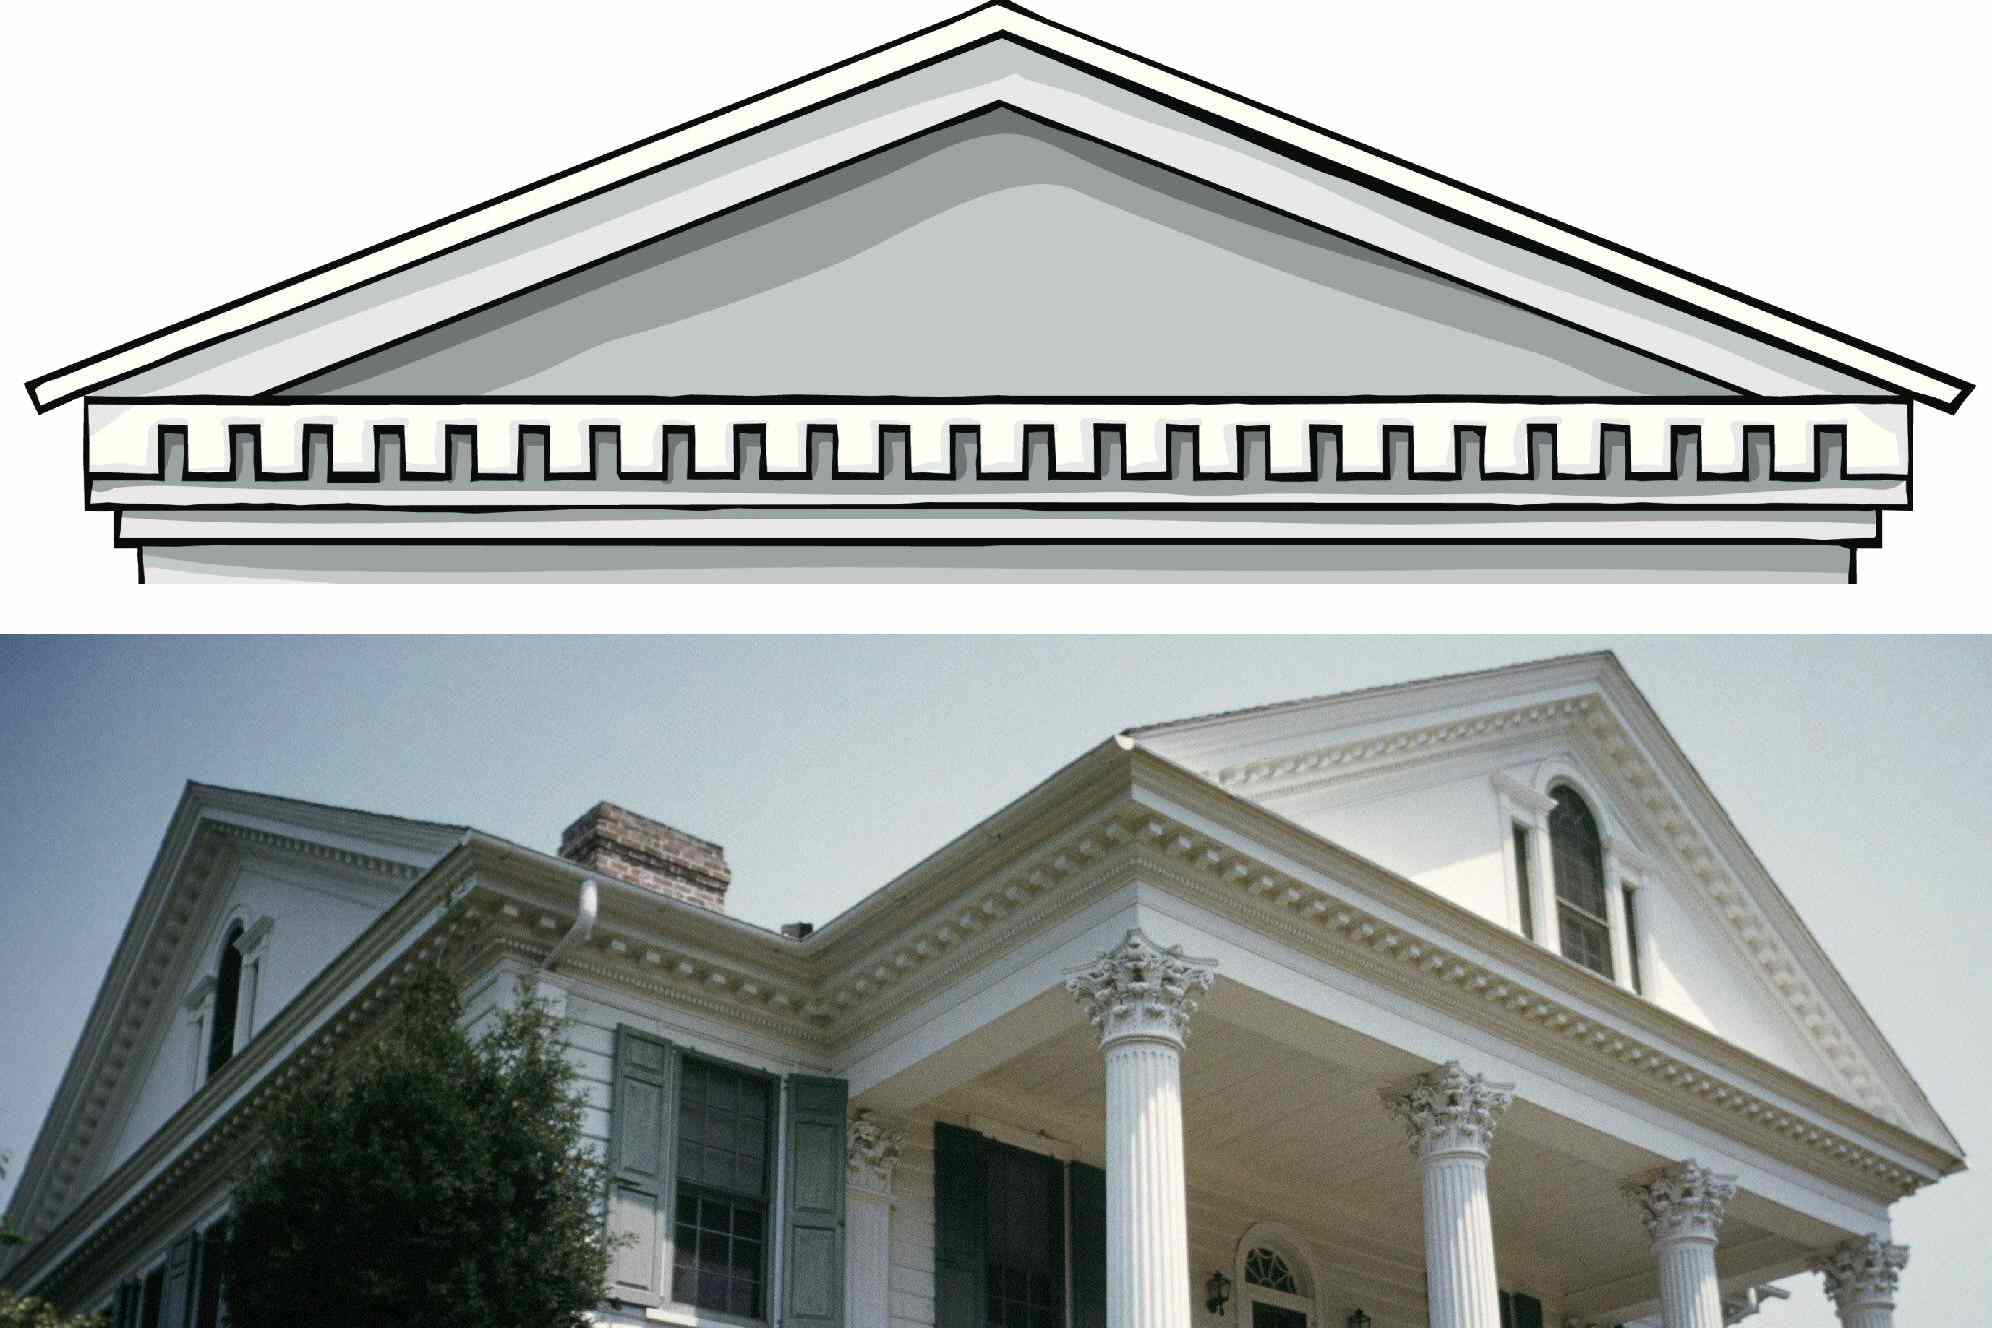 The dentils form a row of squares beneath the flat, bottom line of the triangle